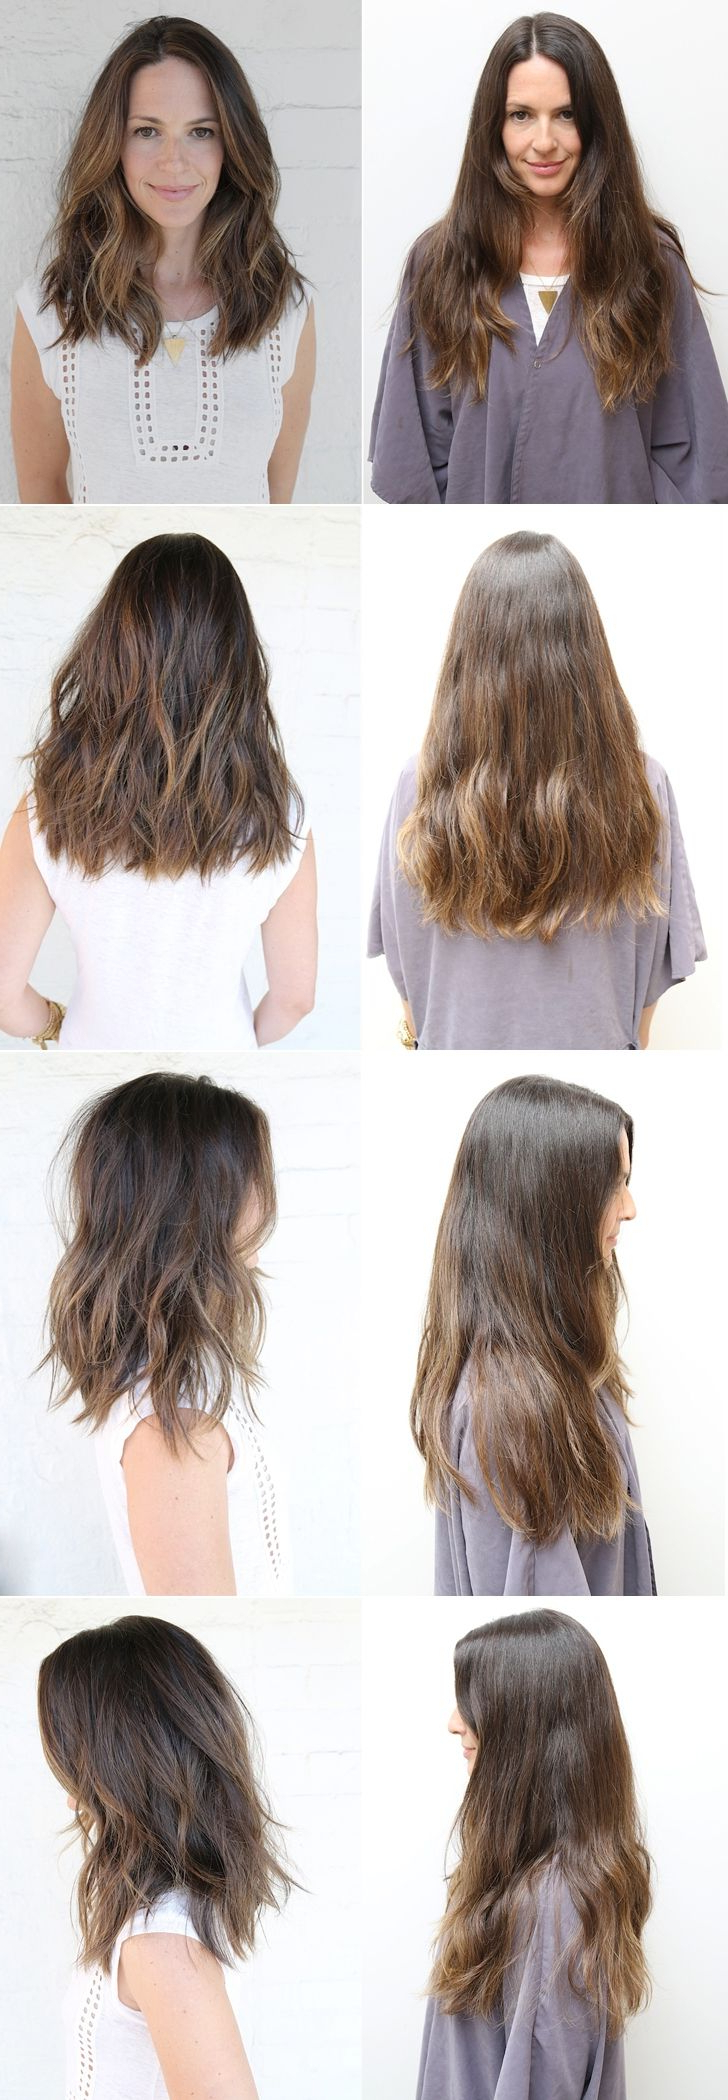 Hair, Hair Cuts, Long Hair Styles Intended For Newest Edgy V Line Layers For Long Hairstyles (Gallery 6 of 20)